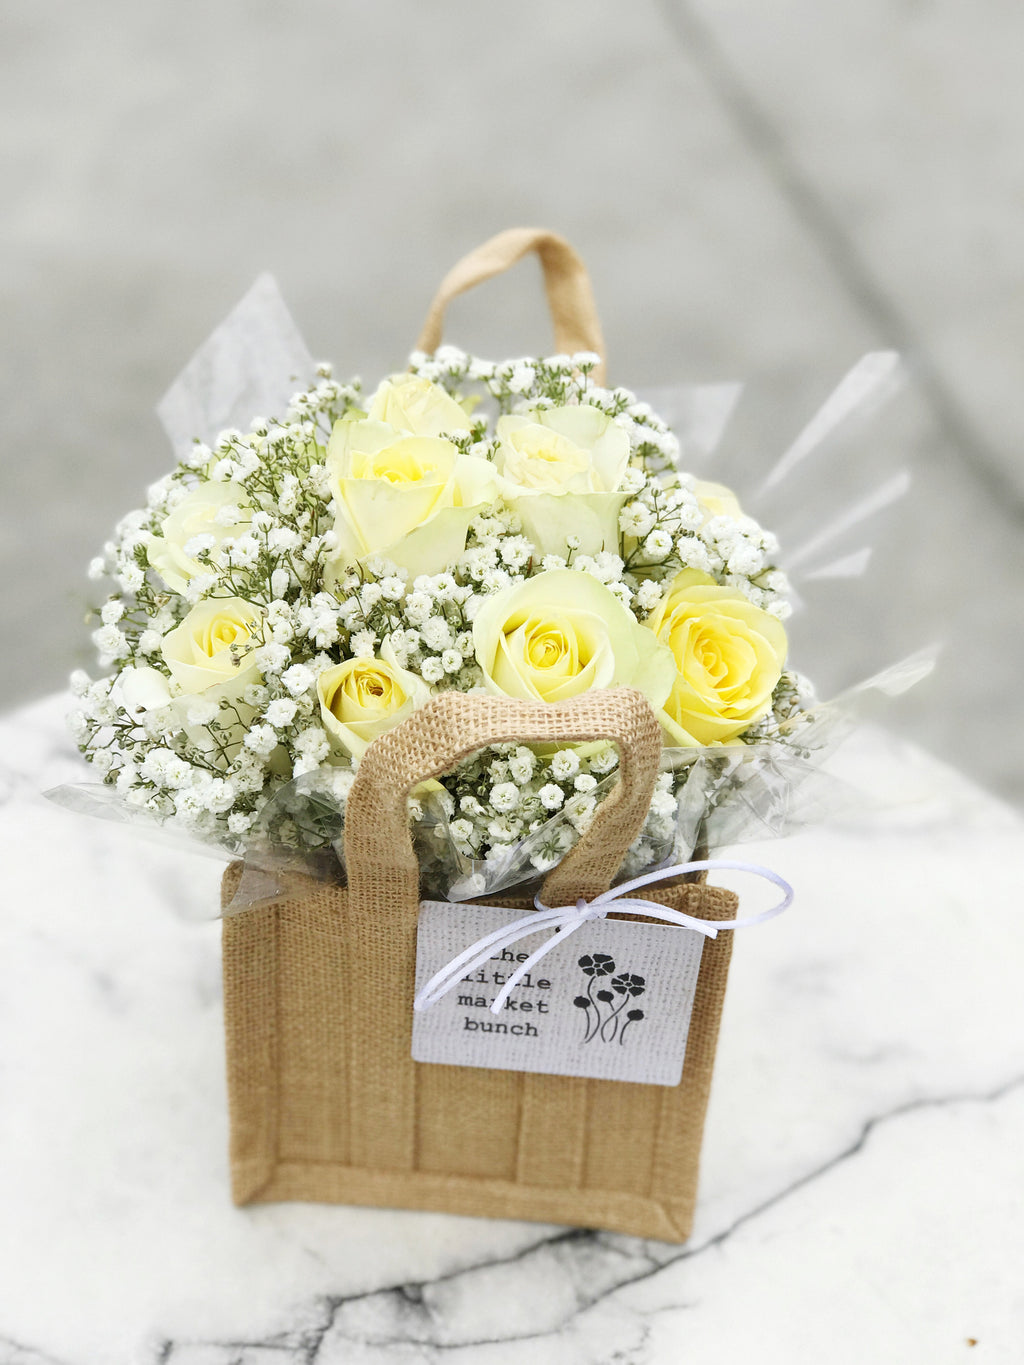 The little market bunch funeral Sympathy Rose bag